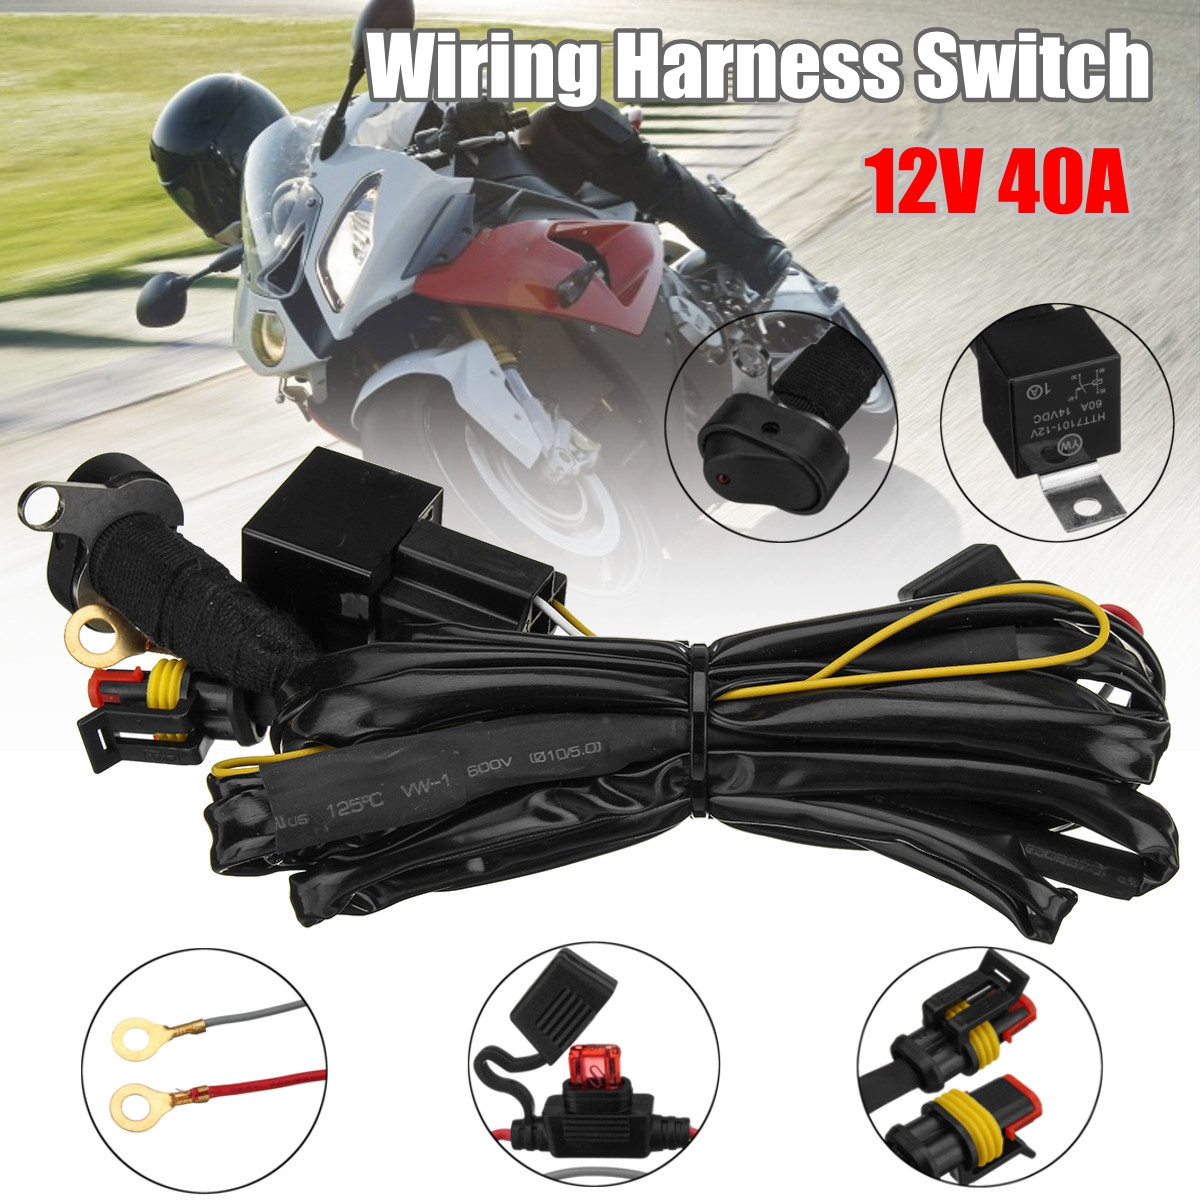 hight resolution of 12v wiring harness switch for bmw r1200gs f800gs adv 12v 40a led fog lights